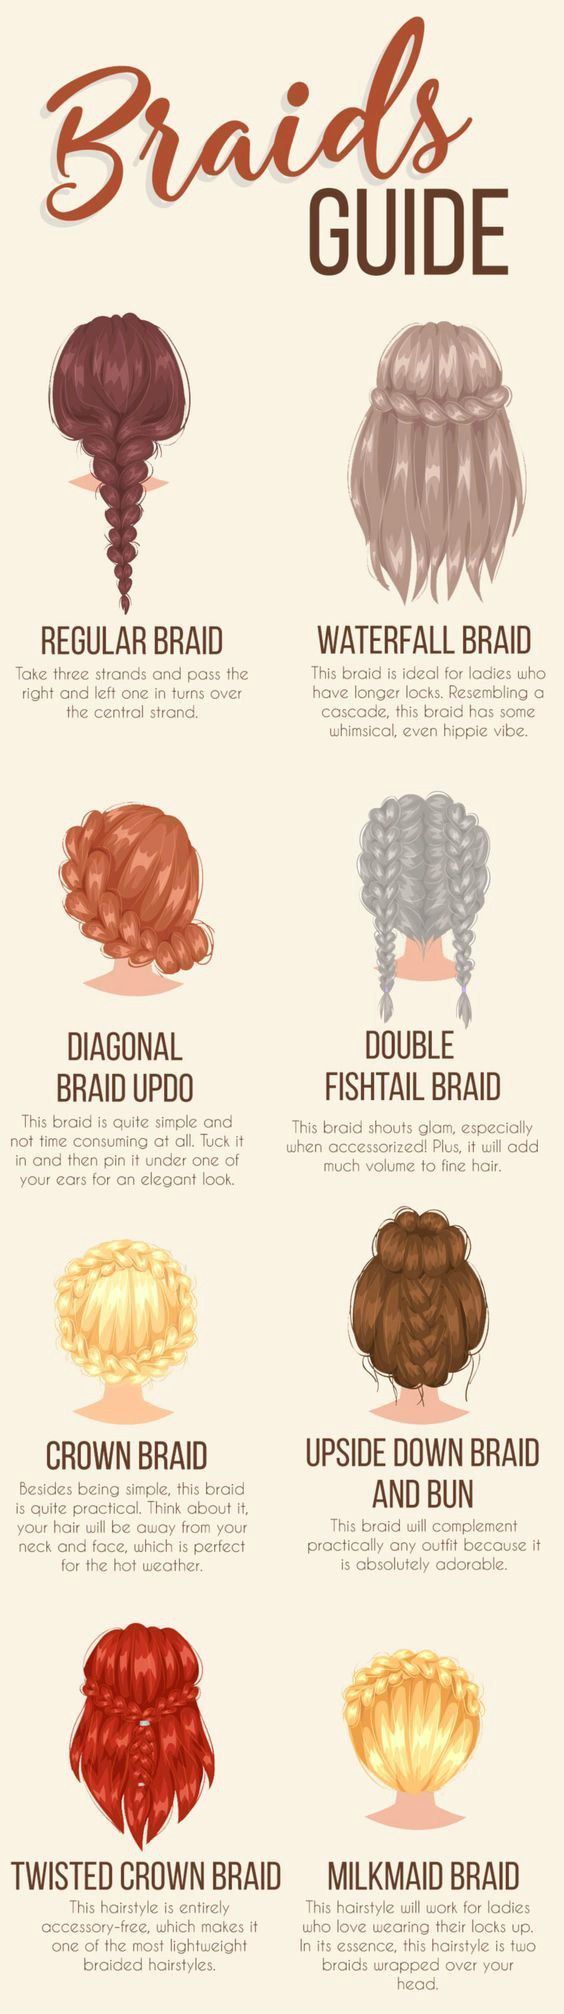 10 Braids Beautyful Quick & Easy Hairstyles for Girls #easyhair